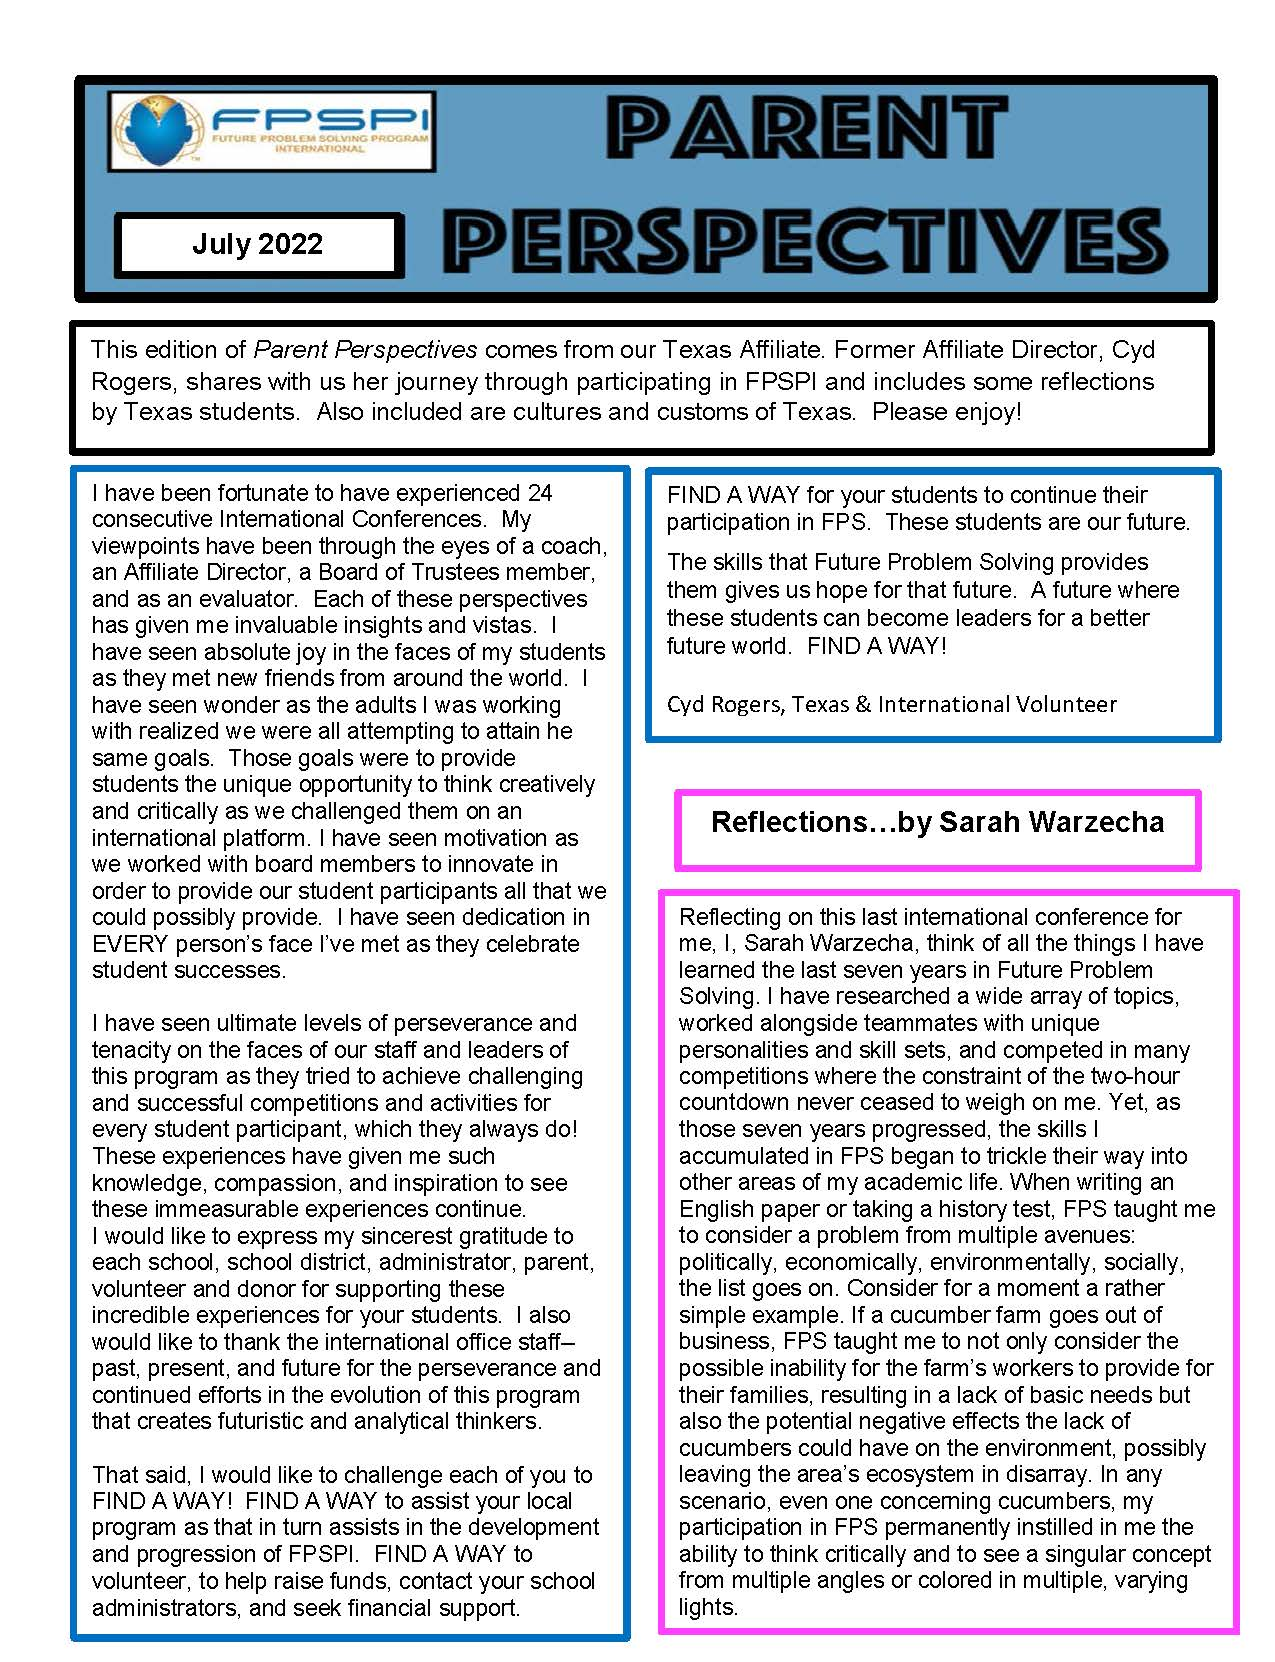 Parent Perspectives Newsletter